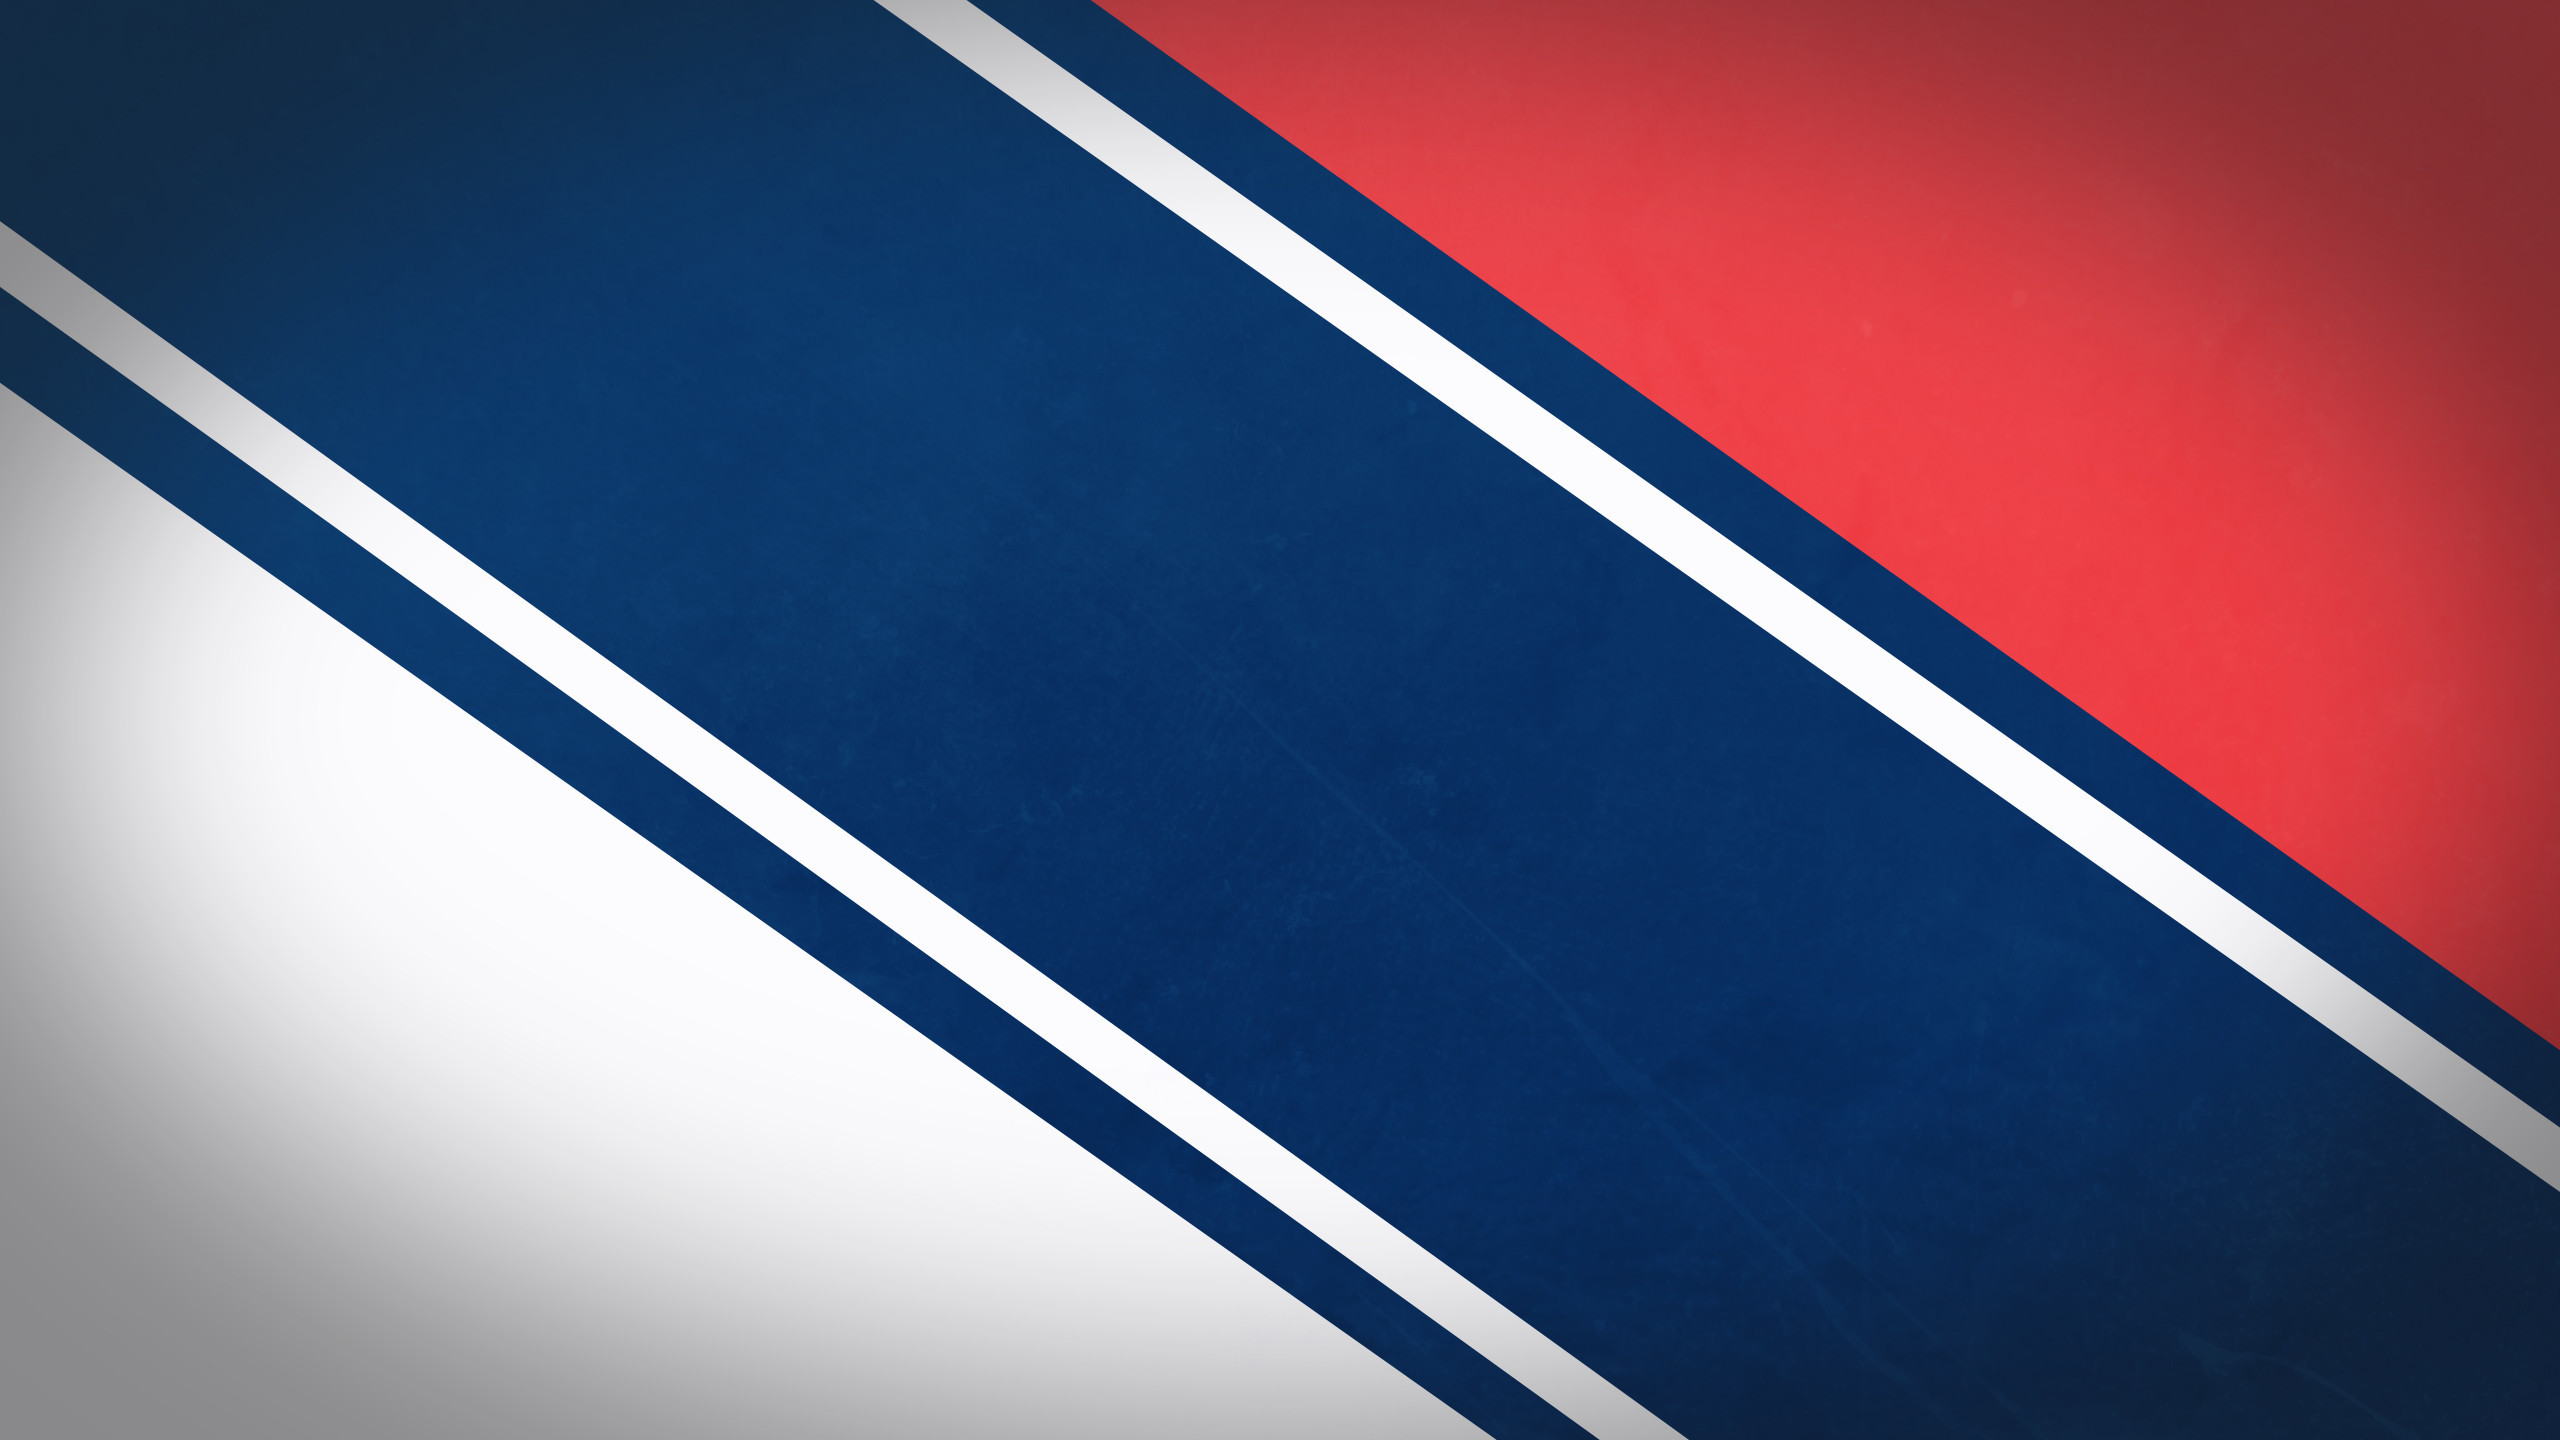 Res: 2560x1440, New York Rangers Wallpaper